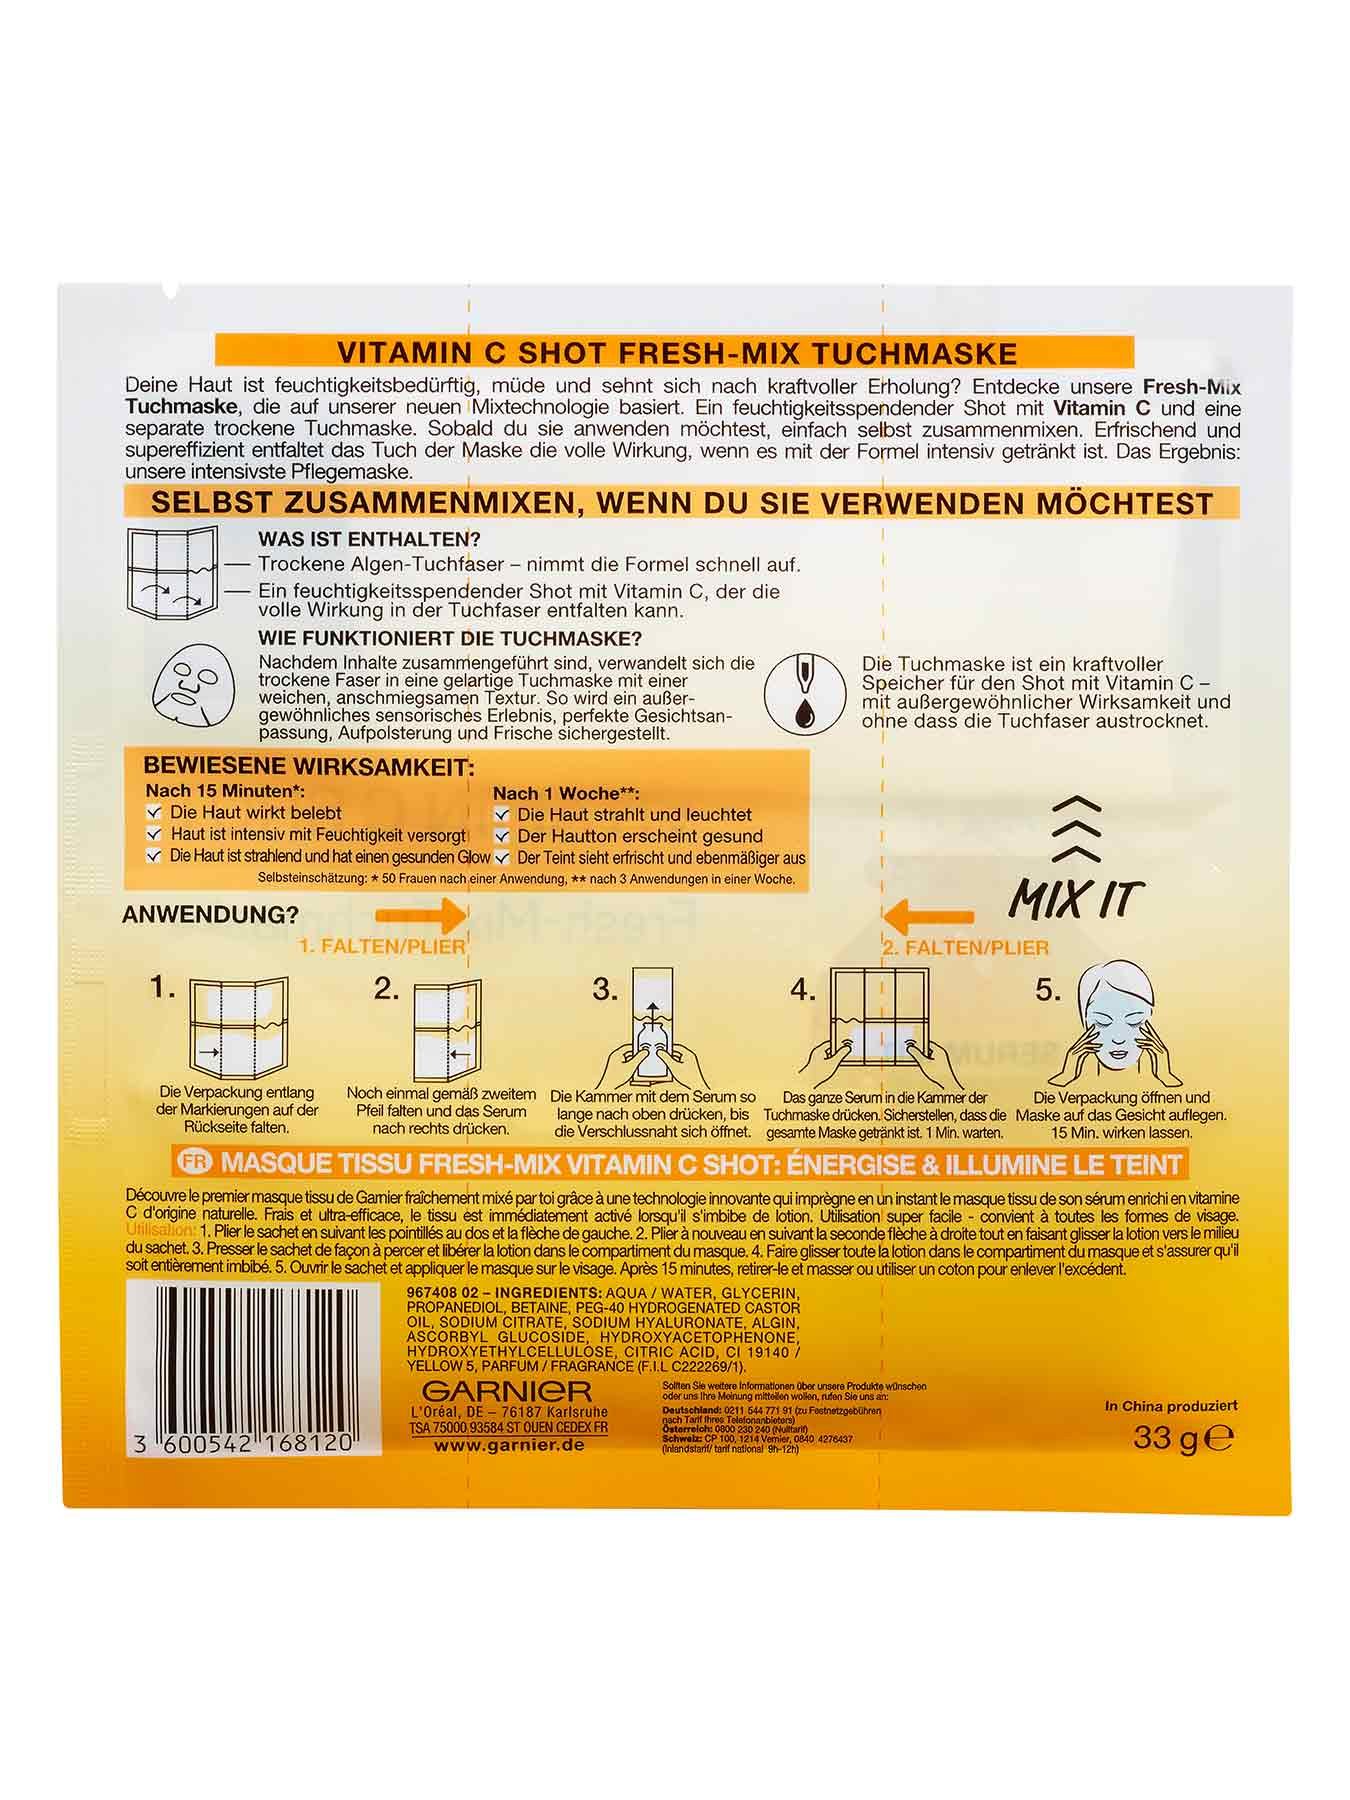 Vitamin-C-Shot-Fresh-Mix-Tuchmaske-Hydra-Bomb-33g-Rueckseite-Garnier-Deutschland-gross